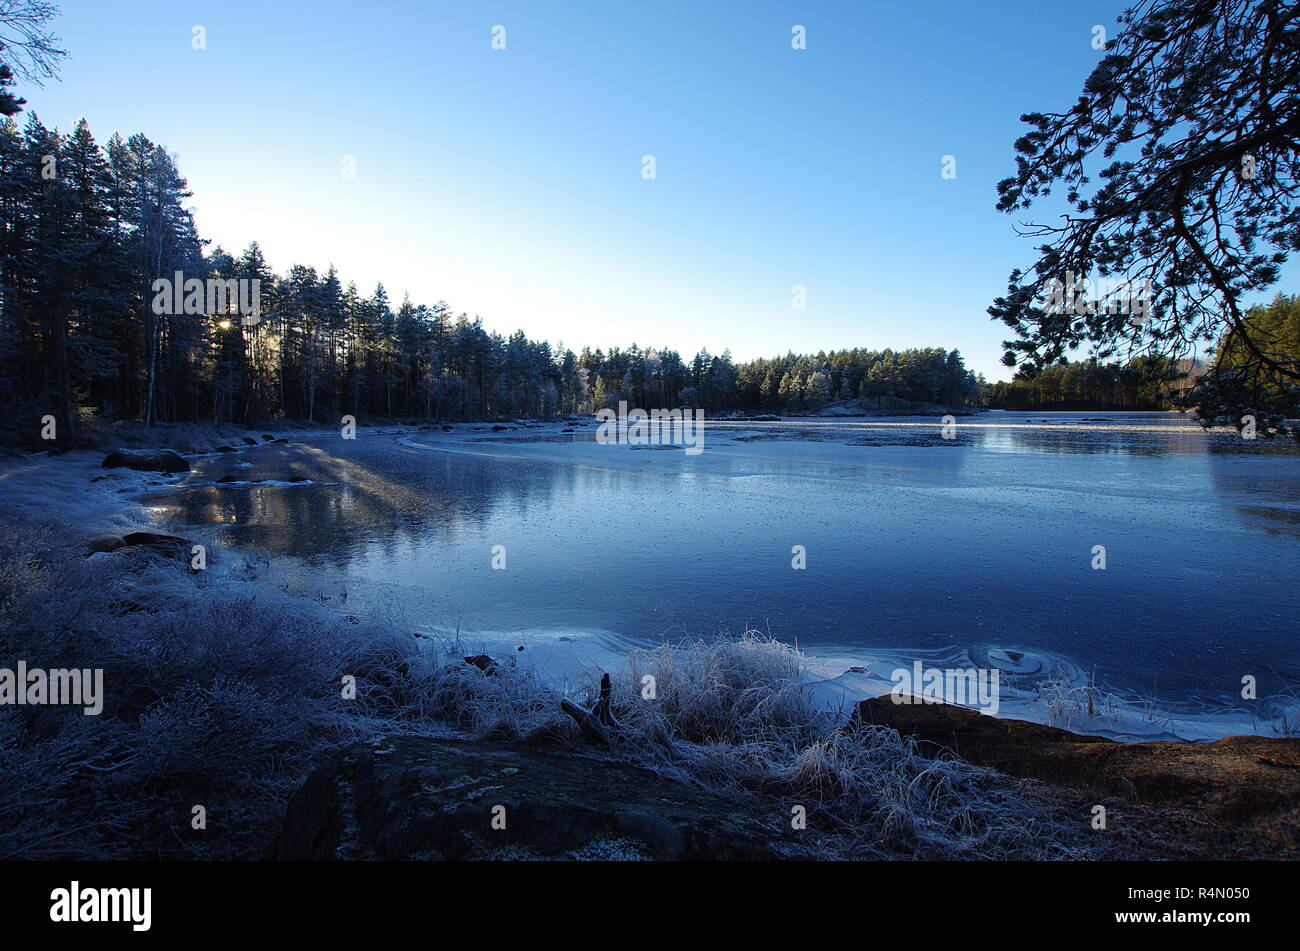 A frozen lake in Dalarna on a cold winter day - Stock Image